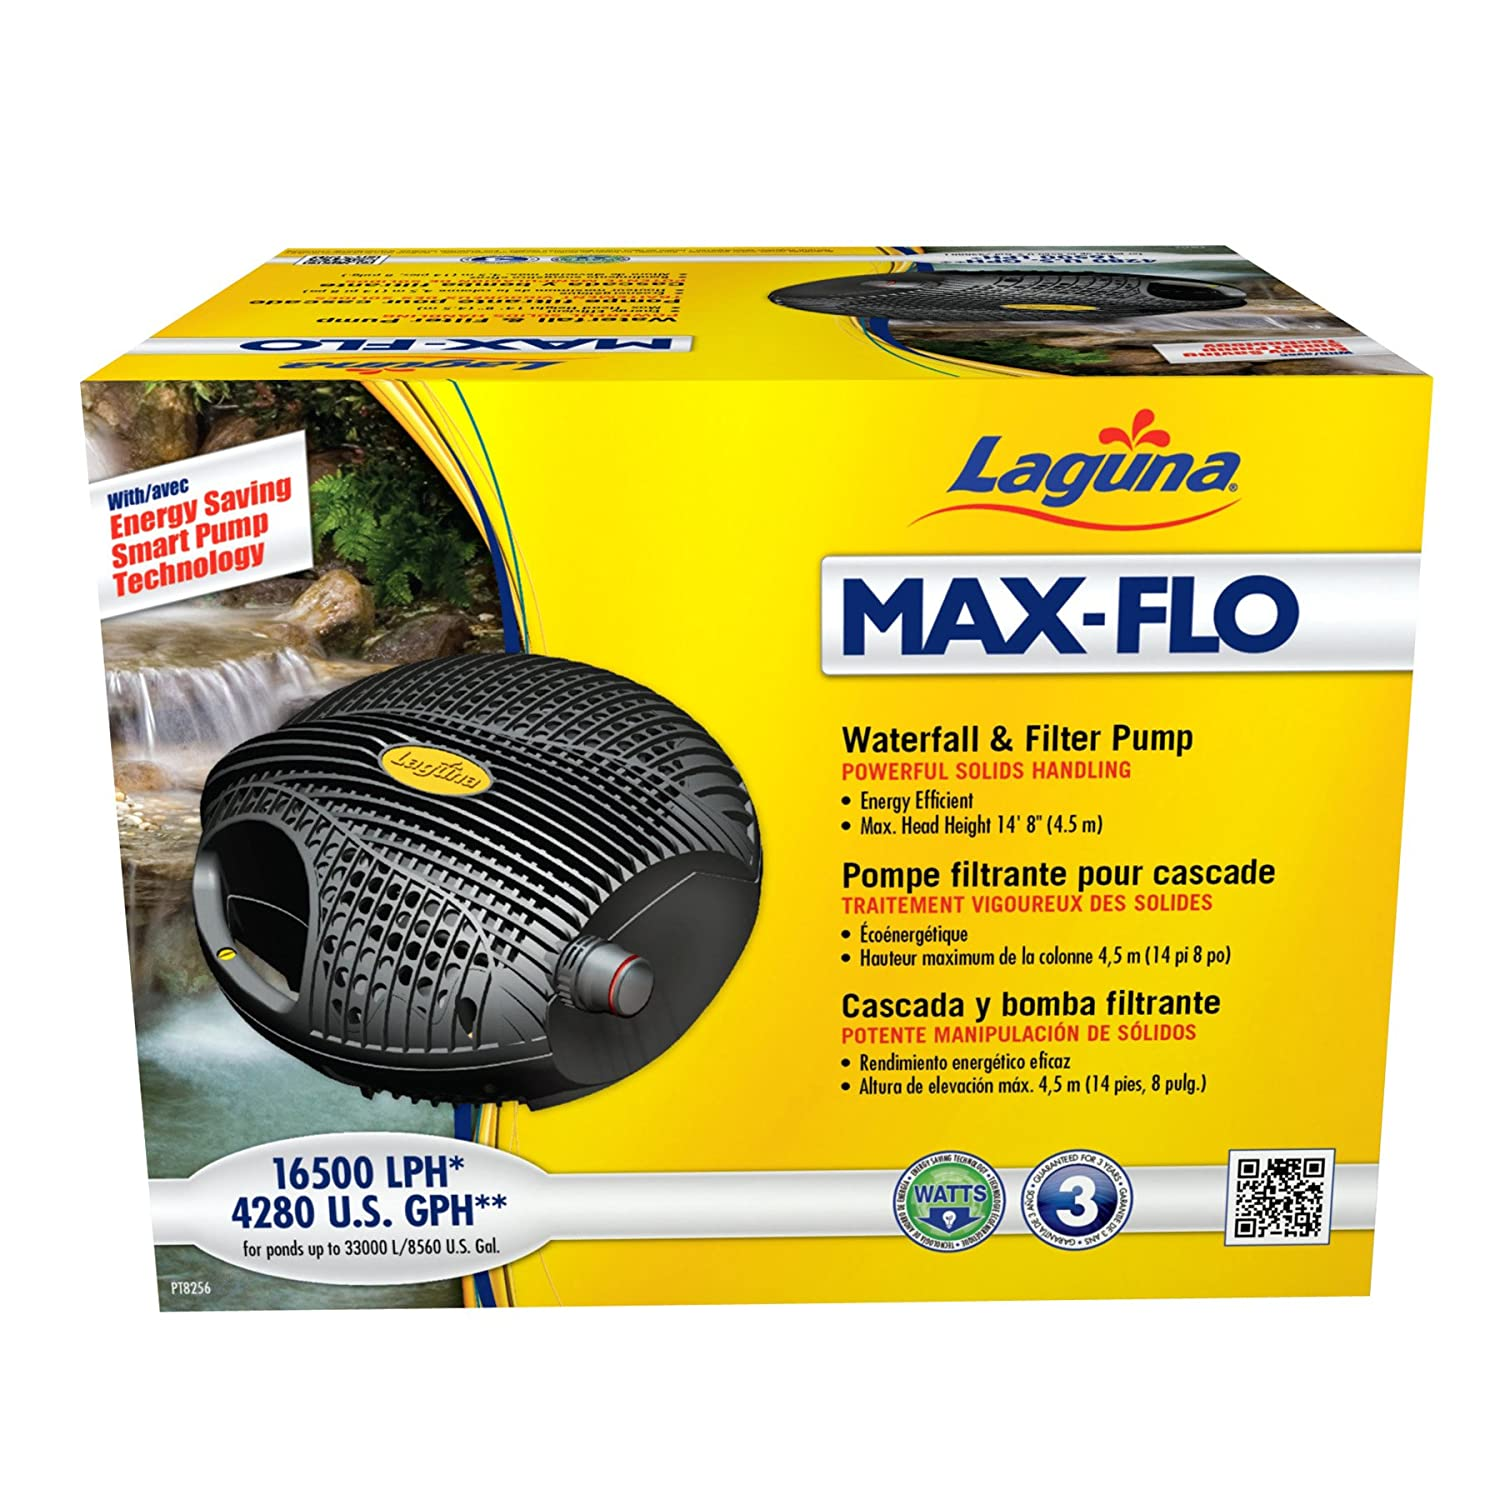 Laguna Max-Flo 4280 Electronic Waterfall and Filter Pump for Ponds Up to 8560-Gallon by Laguna B0079WZI8G